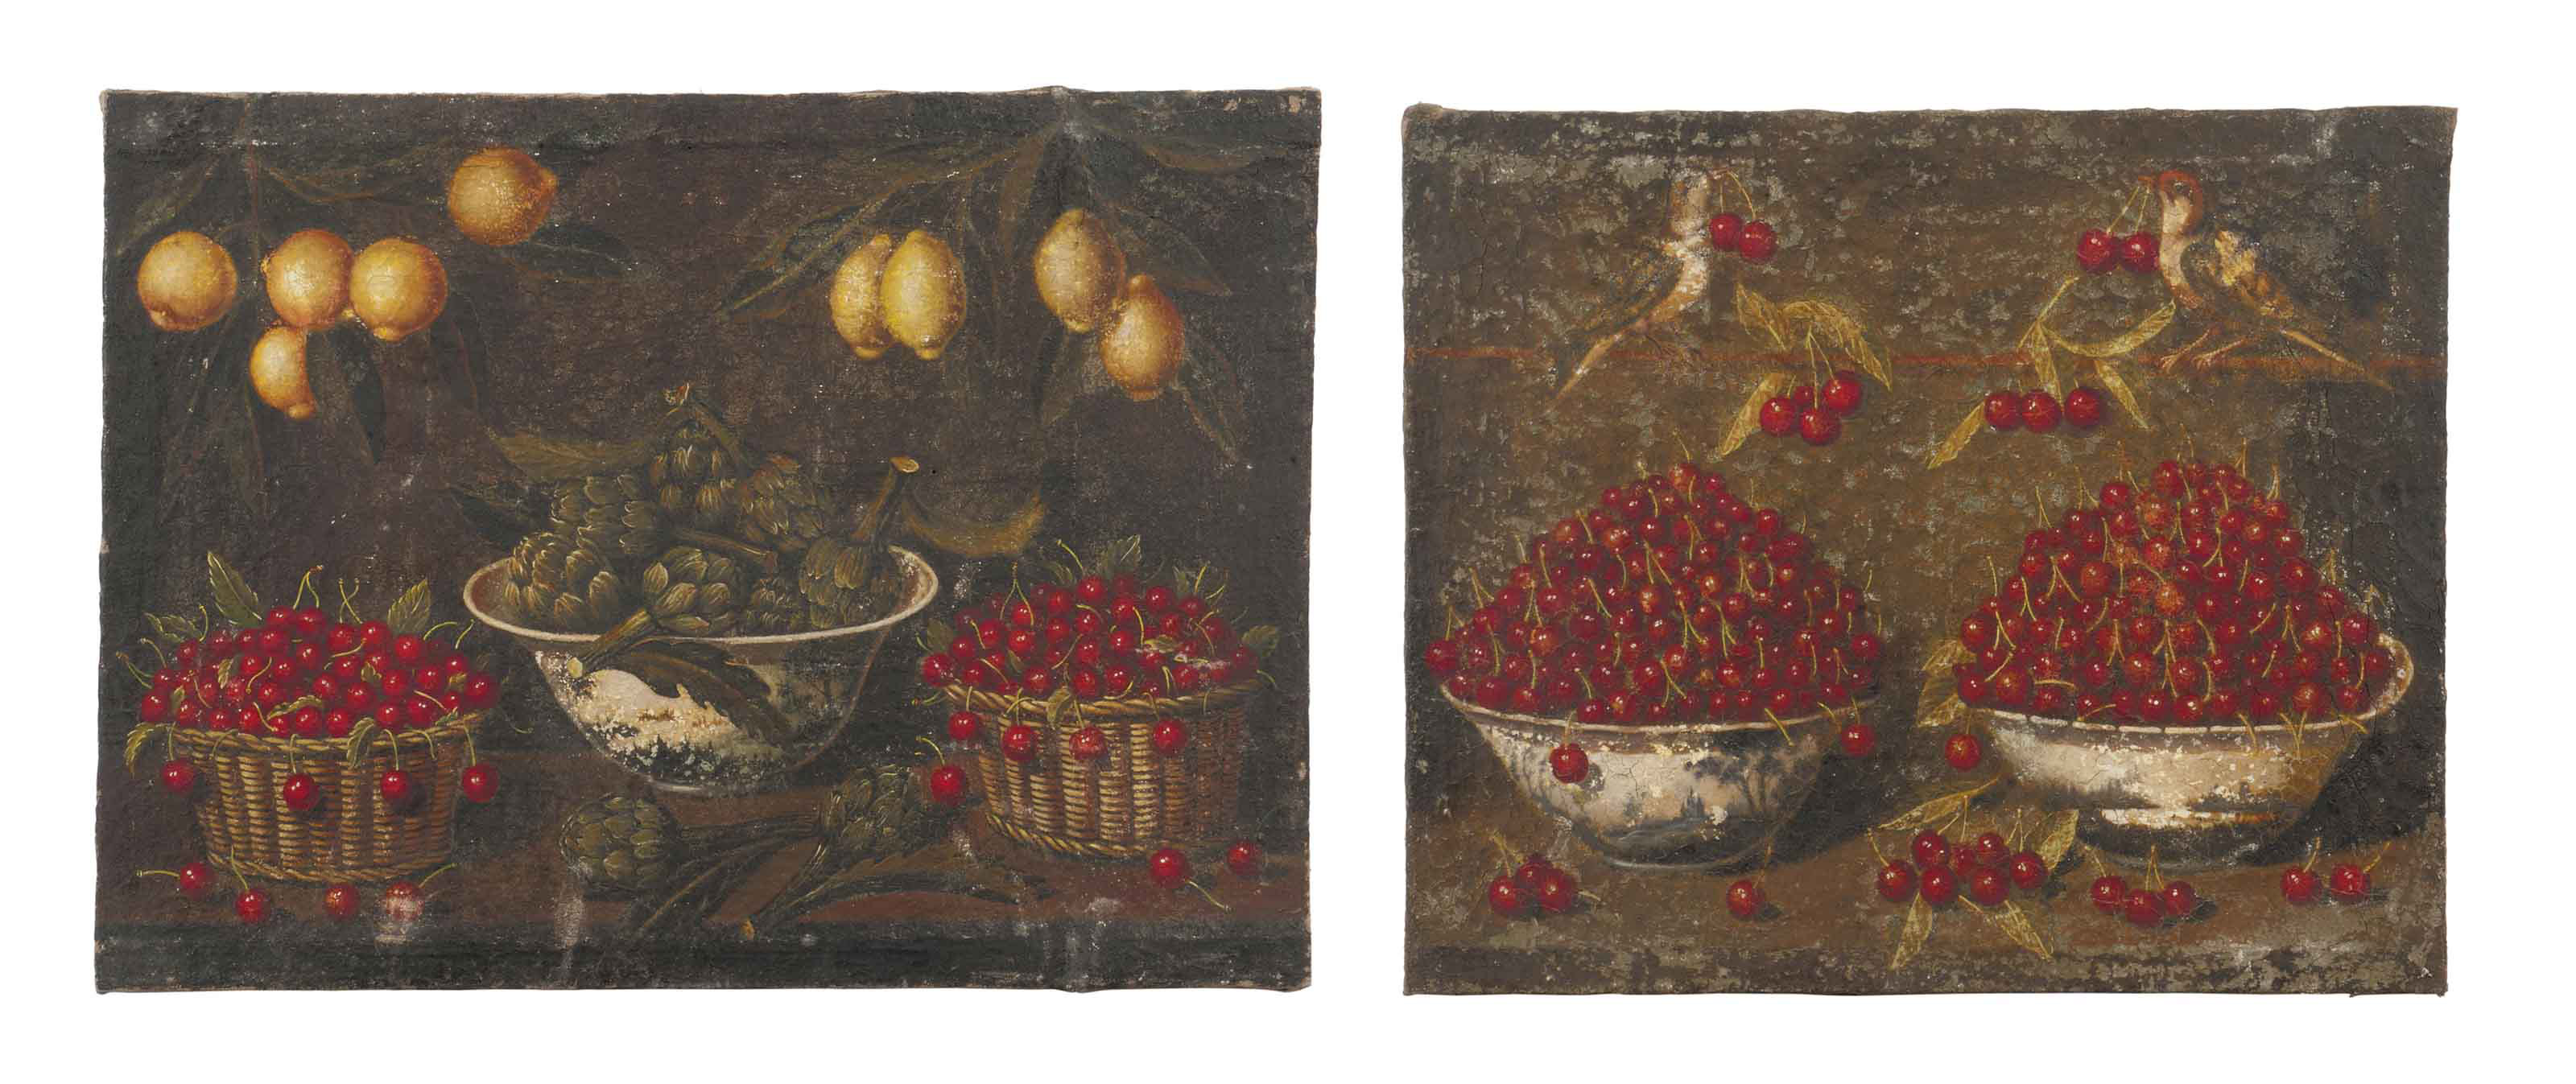 Artichokes in a blue and white bowl, baskets of cherries, lemon trees, on a ledge; and Cherries in blue and white bowls with birds on a stone ledge